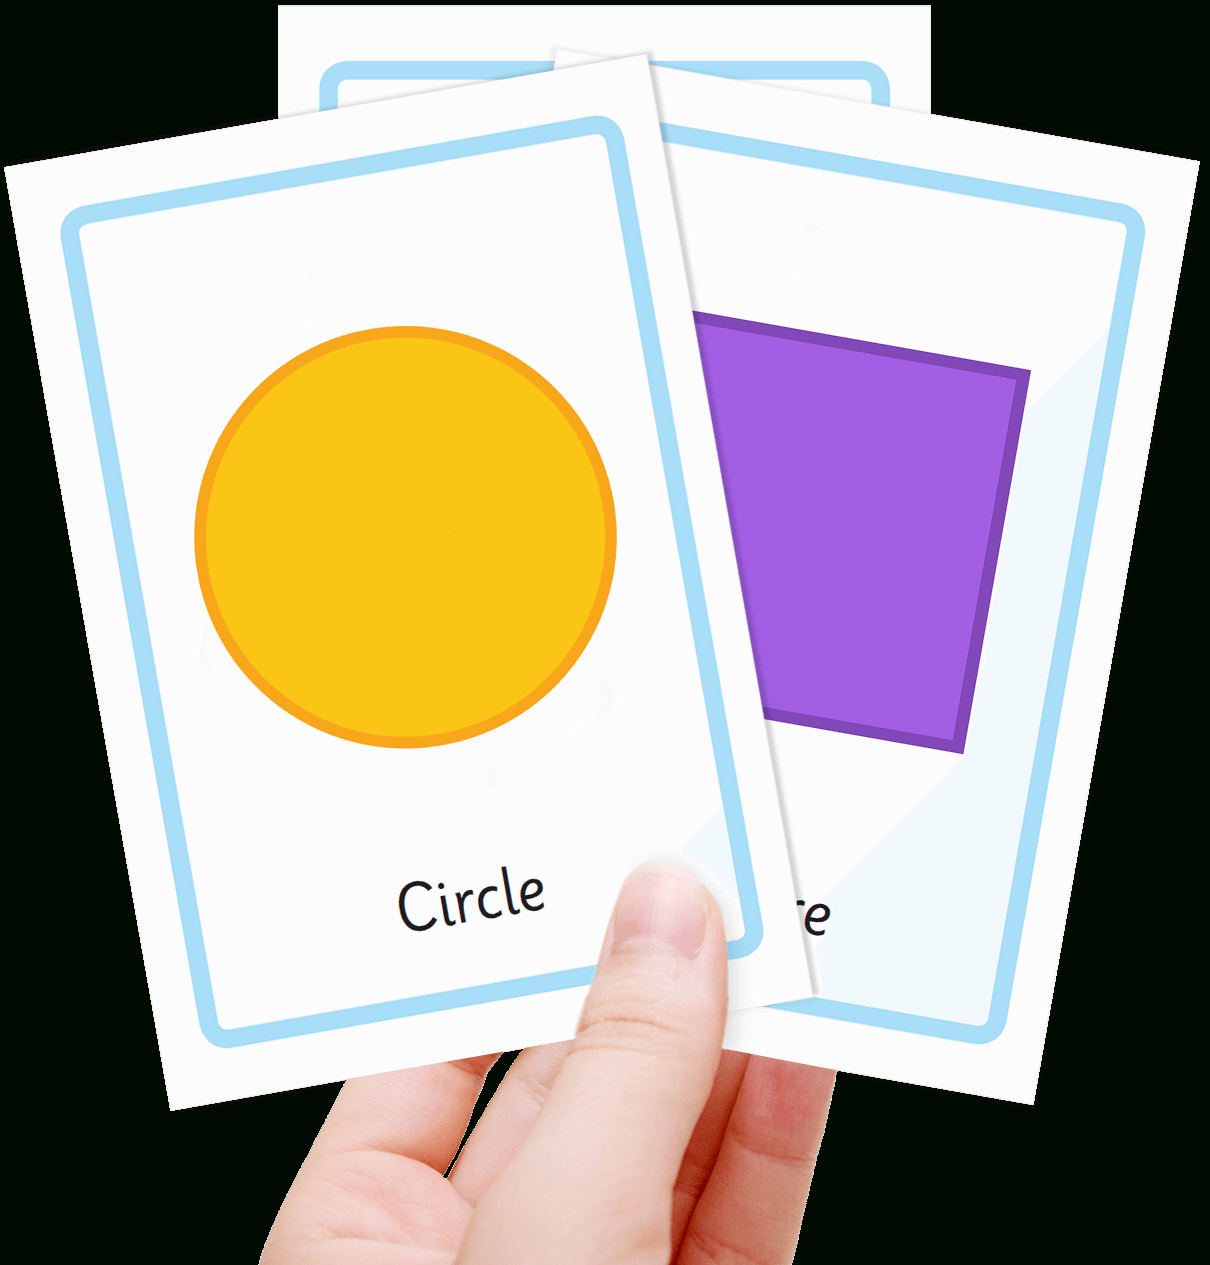 Free Shape Flashcards For Kids - Totcards - Free Printable Flashcards For Toddlers